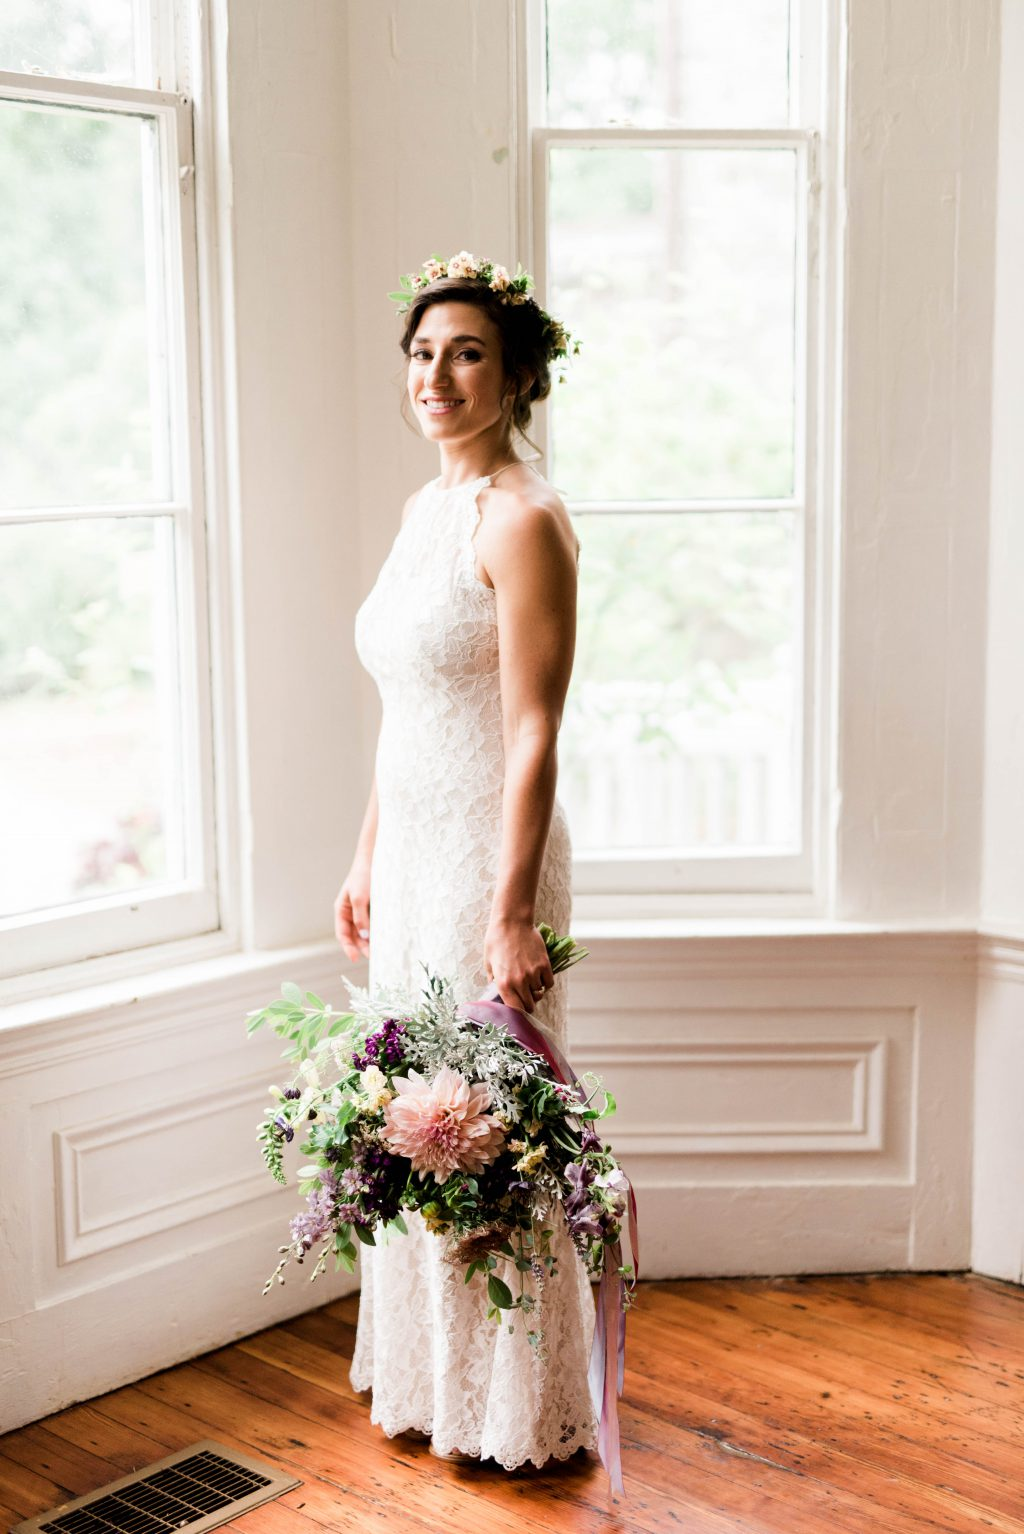 awbury-arboretum-wedding-DIY-boho-summer-haley-richter-photography-047